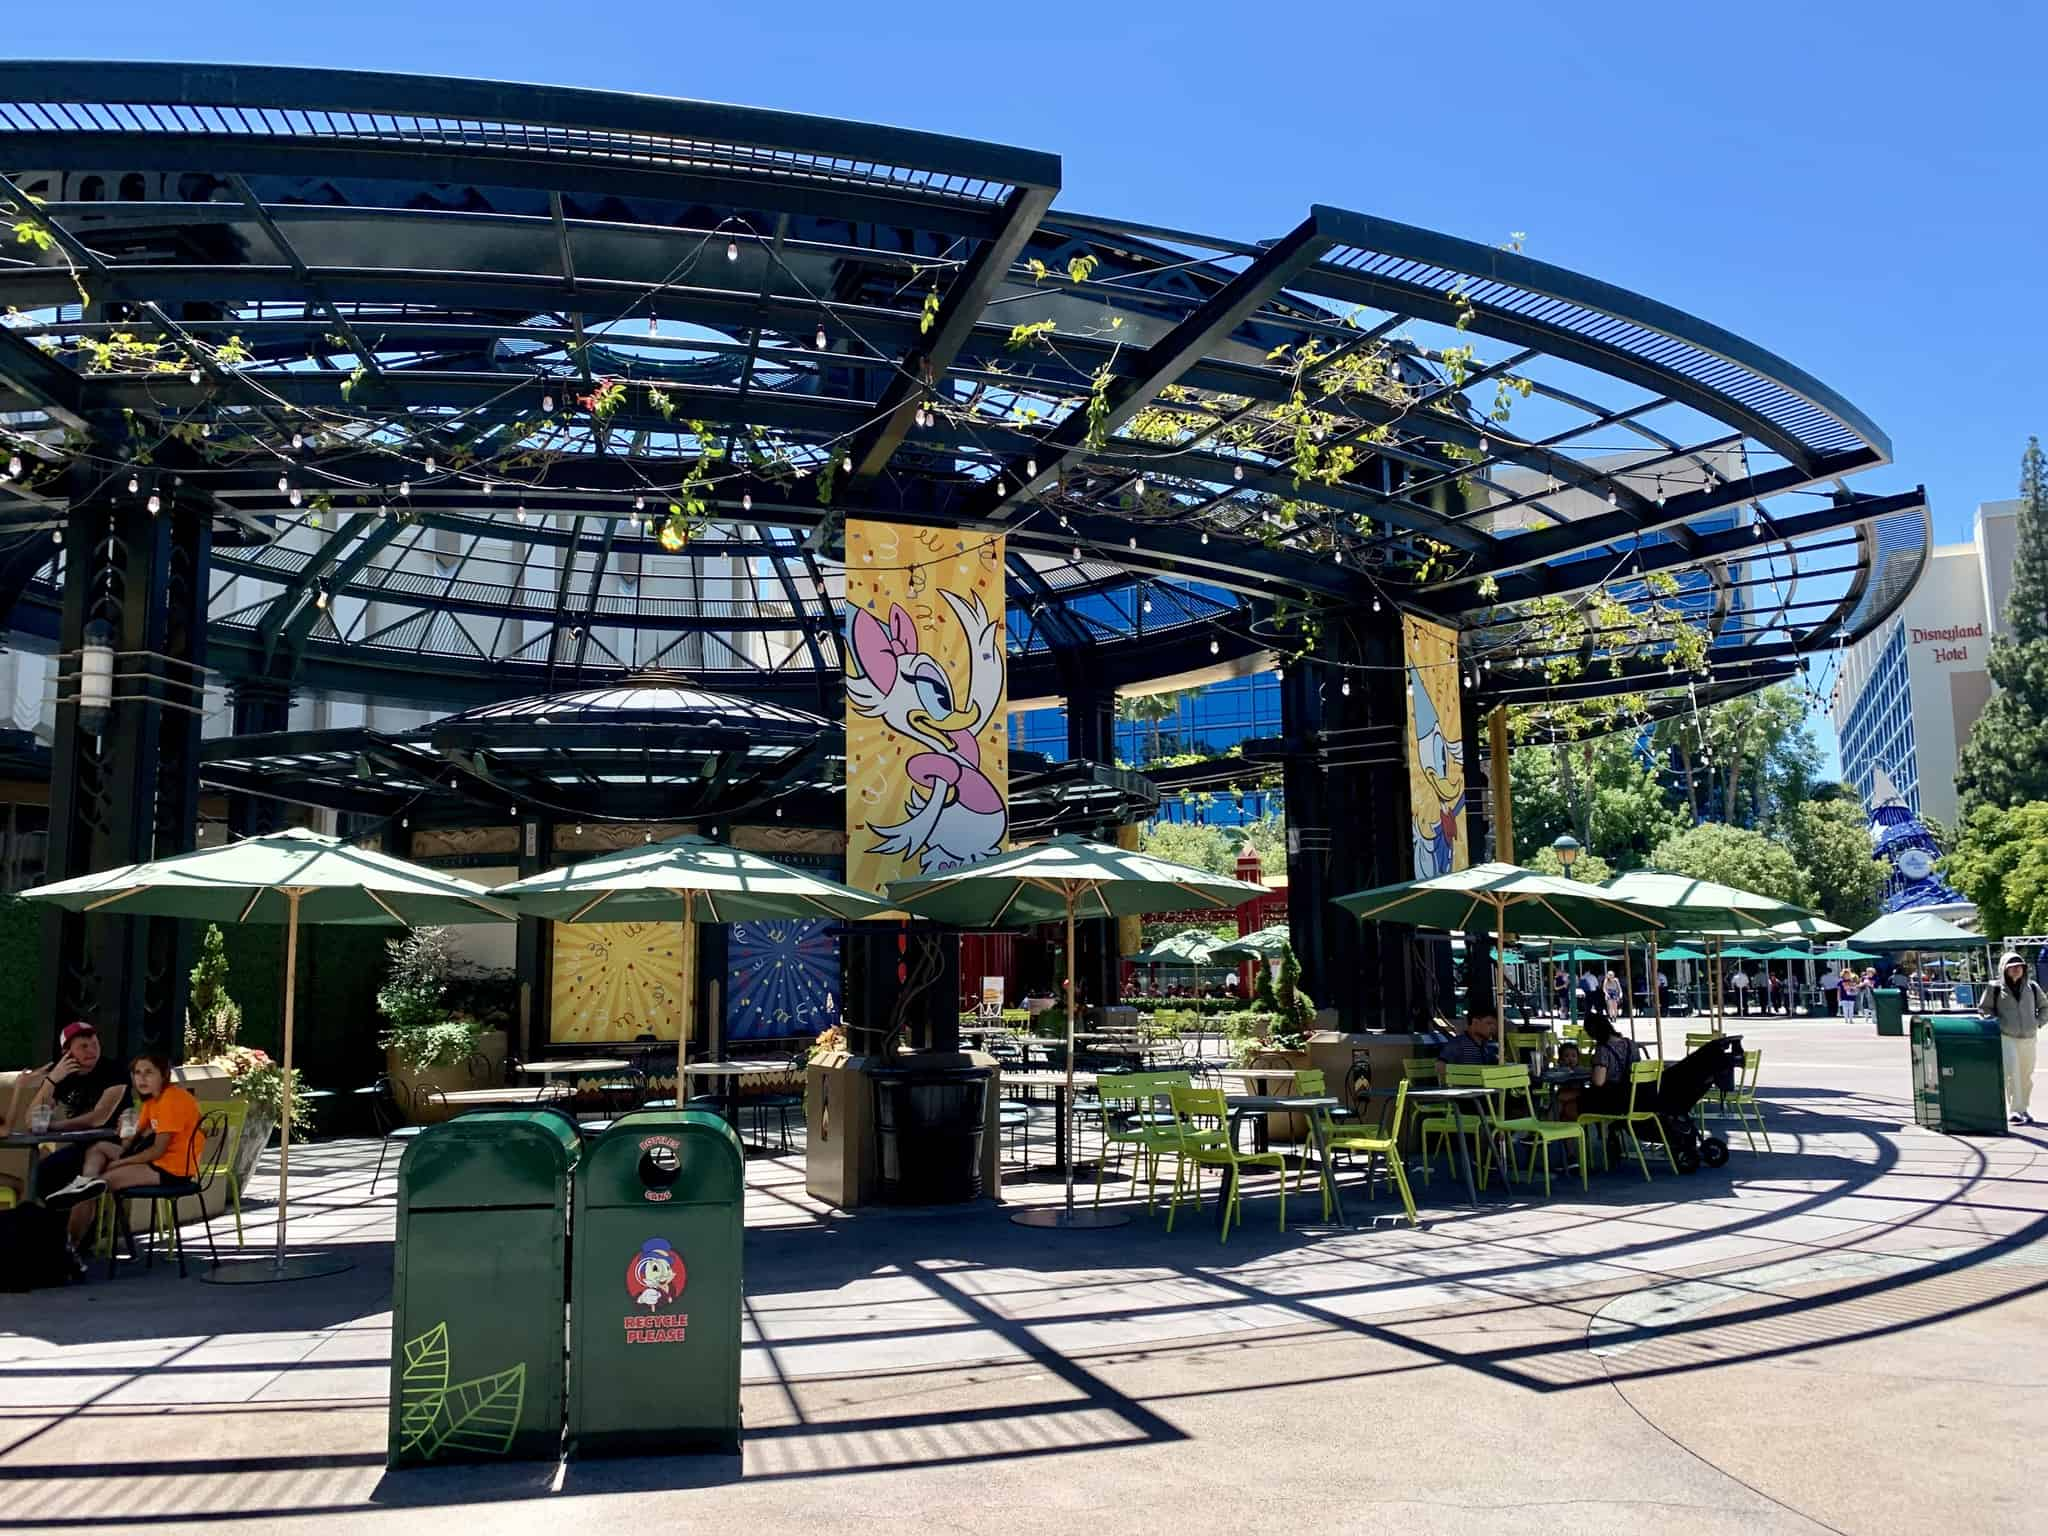 Downtown Disney District July 1 2019 Mickey and Friends Abstract Topiaries, Retro Disney Parks Collage Loungefly, and More